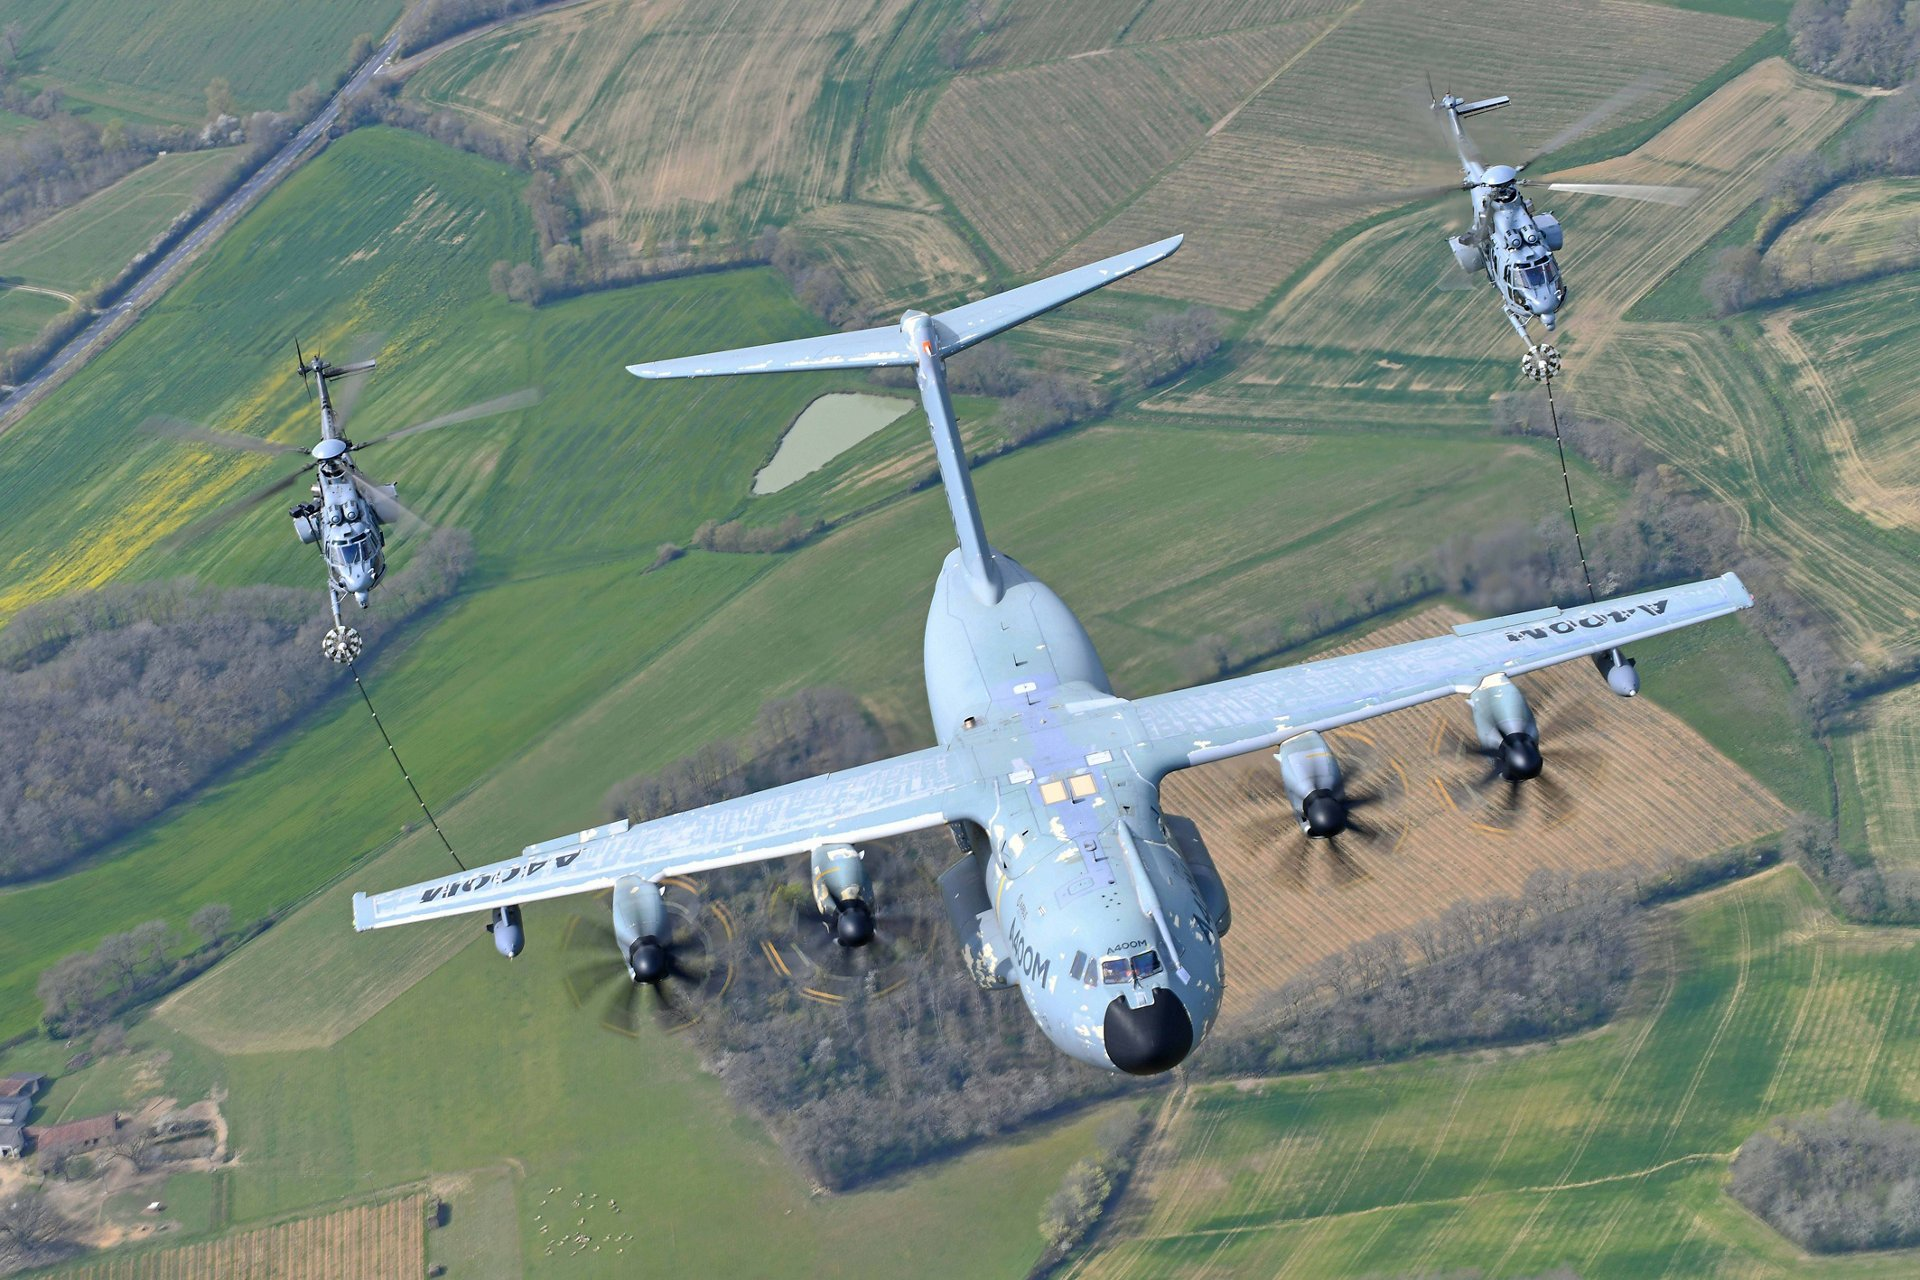 The Airbus A400M new generation airlifter has successfully conducted a major helicopter air-to-air refuelling certification campaign, completing a majority of its development activities. In 2021, Airbus Defence and Space aims to achieve full helicopter air-to-air refuelling certification with the conclusion of all mandatory night operation trials